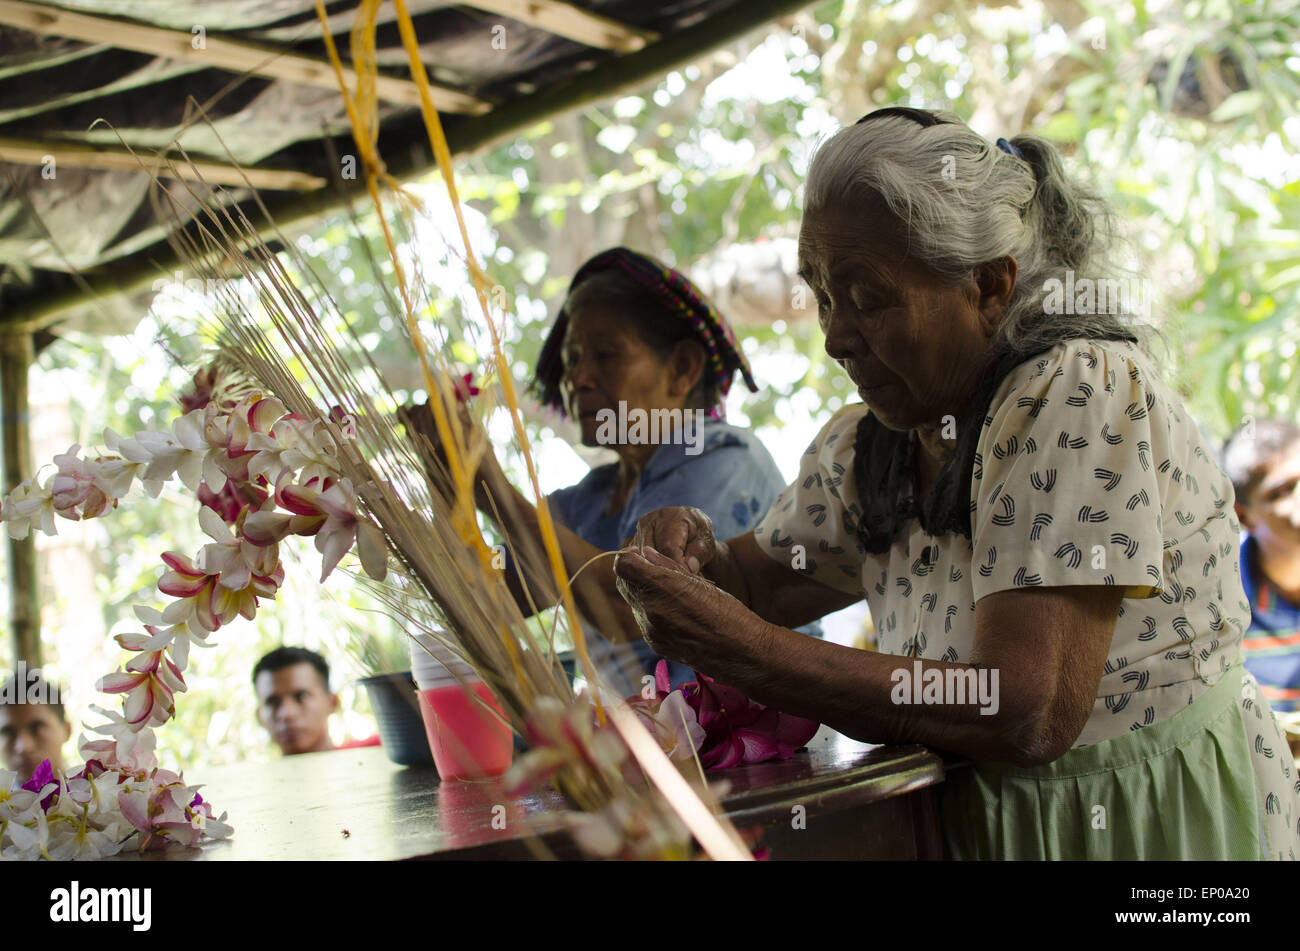 Panchimalco san salvador el salvador 10th may 2015 women use panchimalco san salvador el salvador 10th may 2015 women use flowers to decorate palm branches in preparation for a catholic procession sciox Gallery